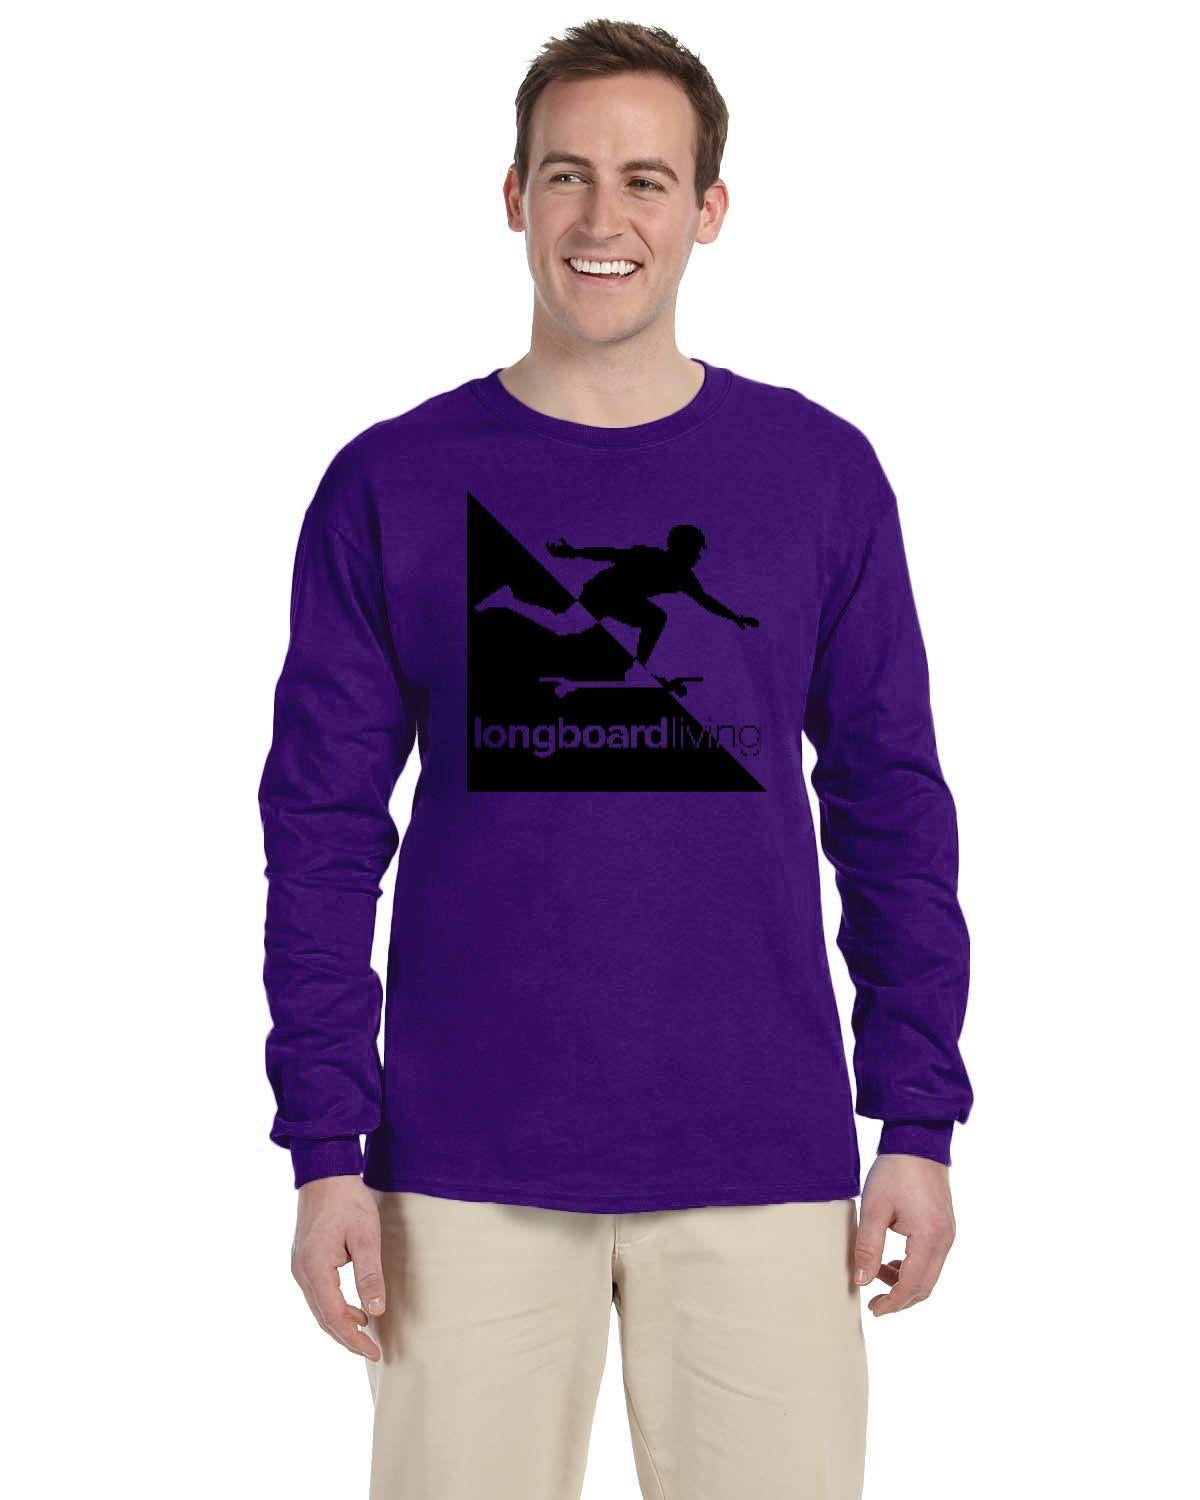 Longboard Living Yang Long Sleeve Shirt